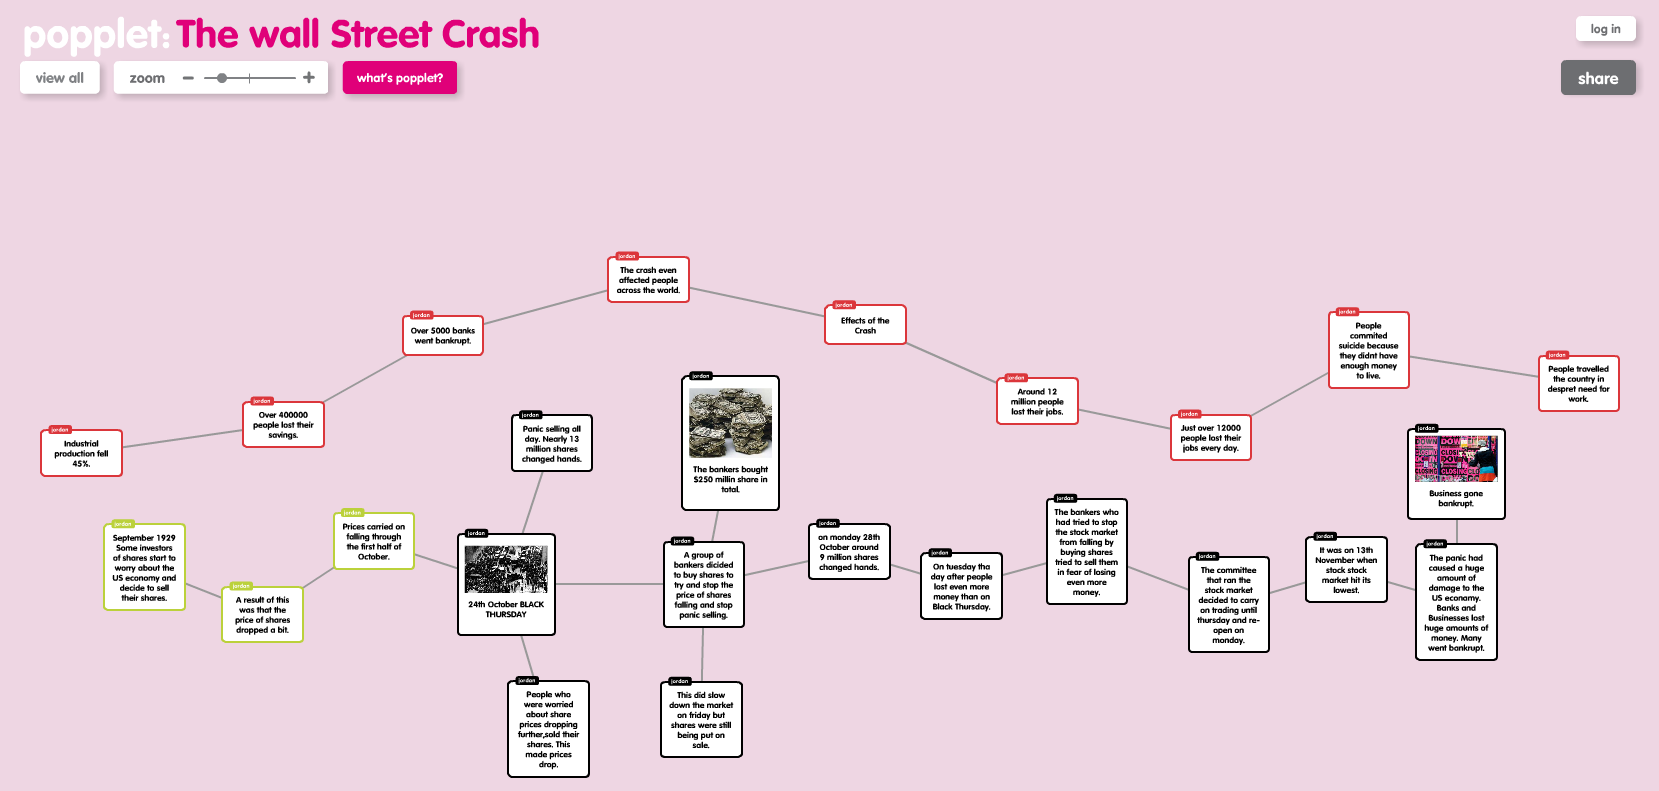 Wall street crash timeline by jordan from mraotways history wall street crash timeline by jordan from mraotways history class ccuart Gallery